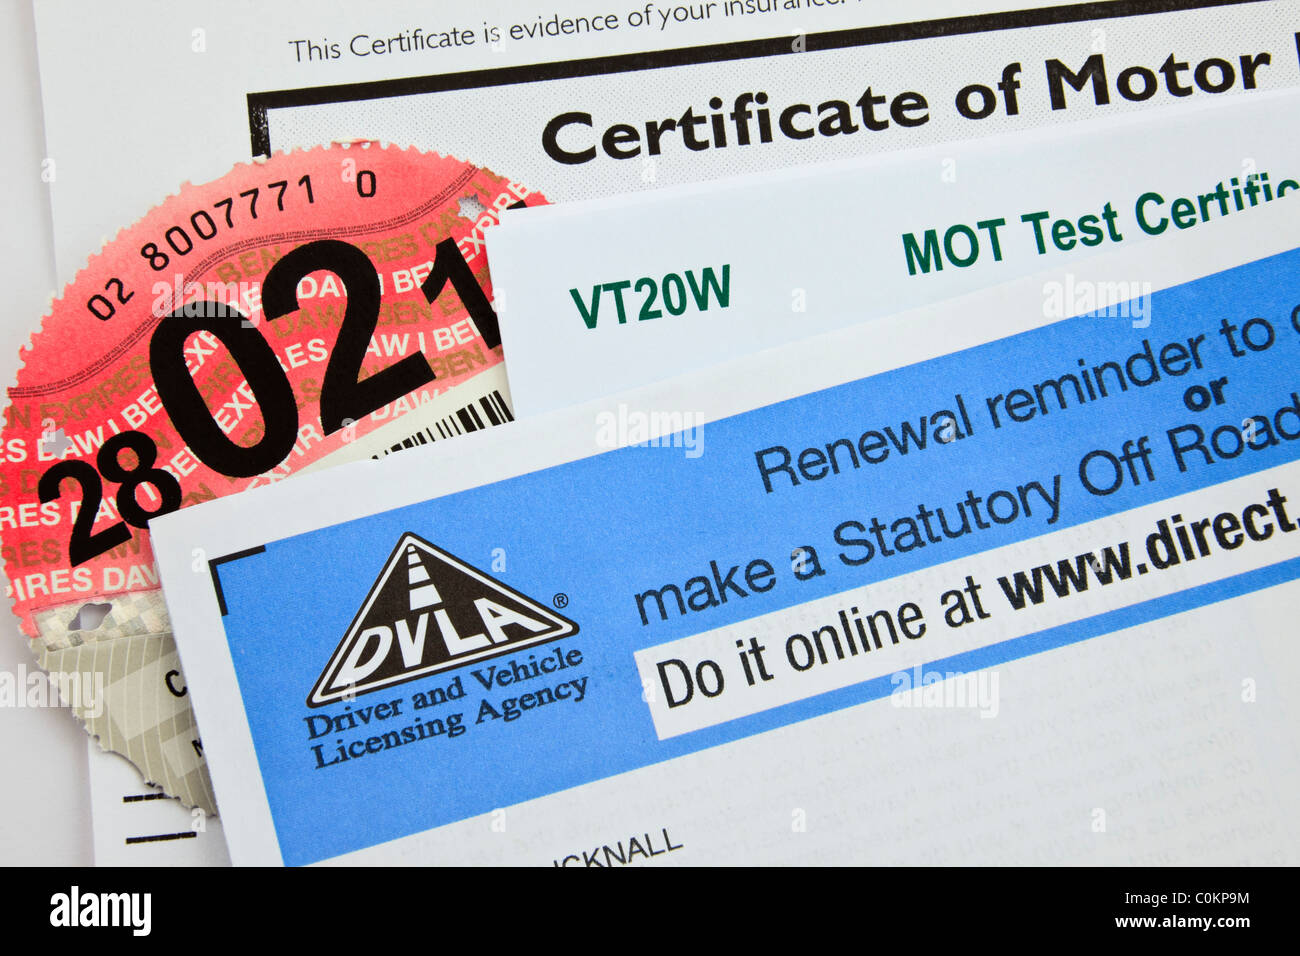 UK, Britain. DVLA renewal reminder form for renewing road tax disc with motor insurance certificate and MOT test - Stock Image